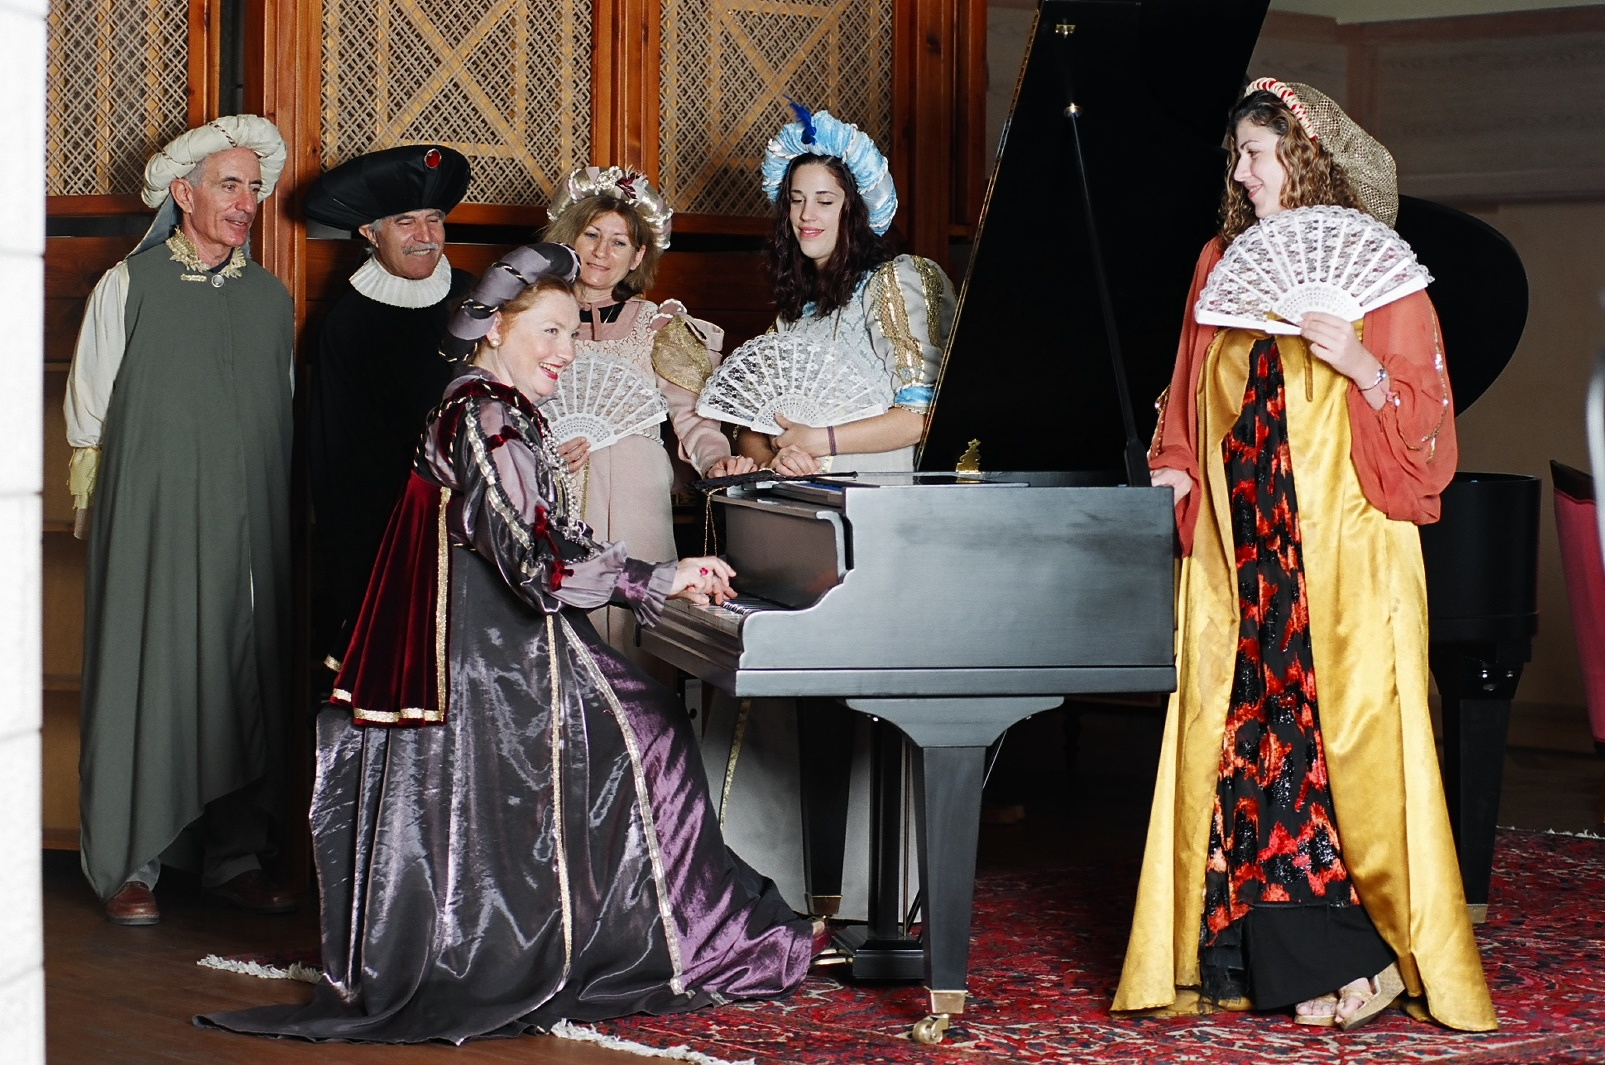 Guests at Casa Dona Gracia dressed in period costumes for a souvenir snapshot. Photo: courtesy